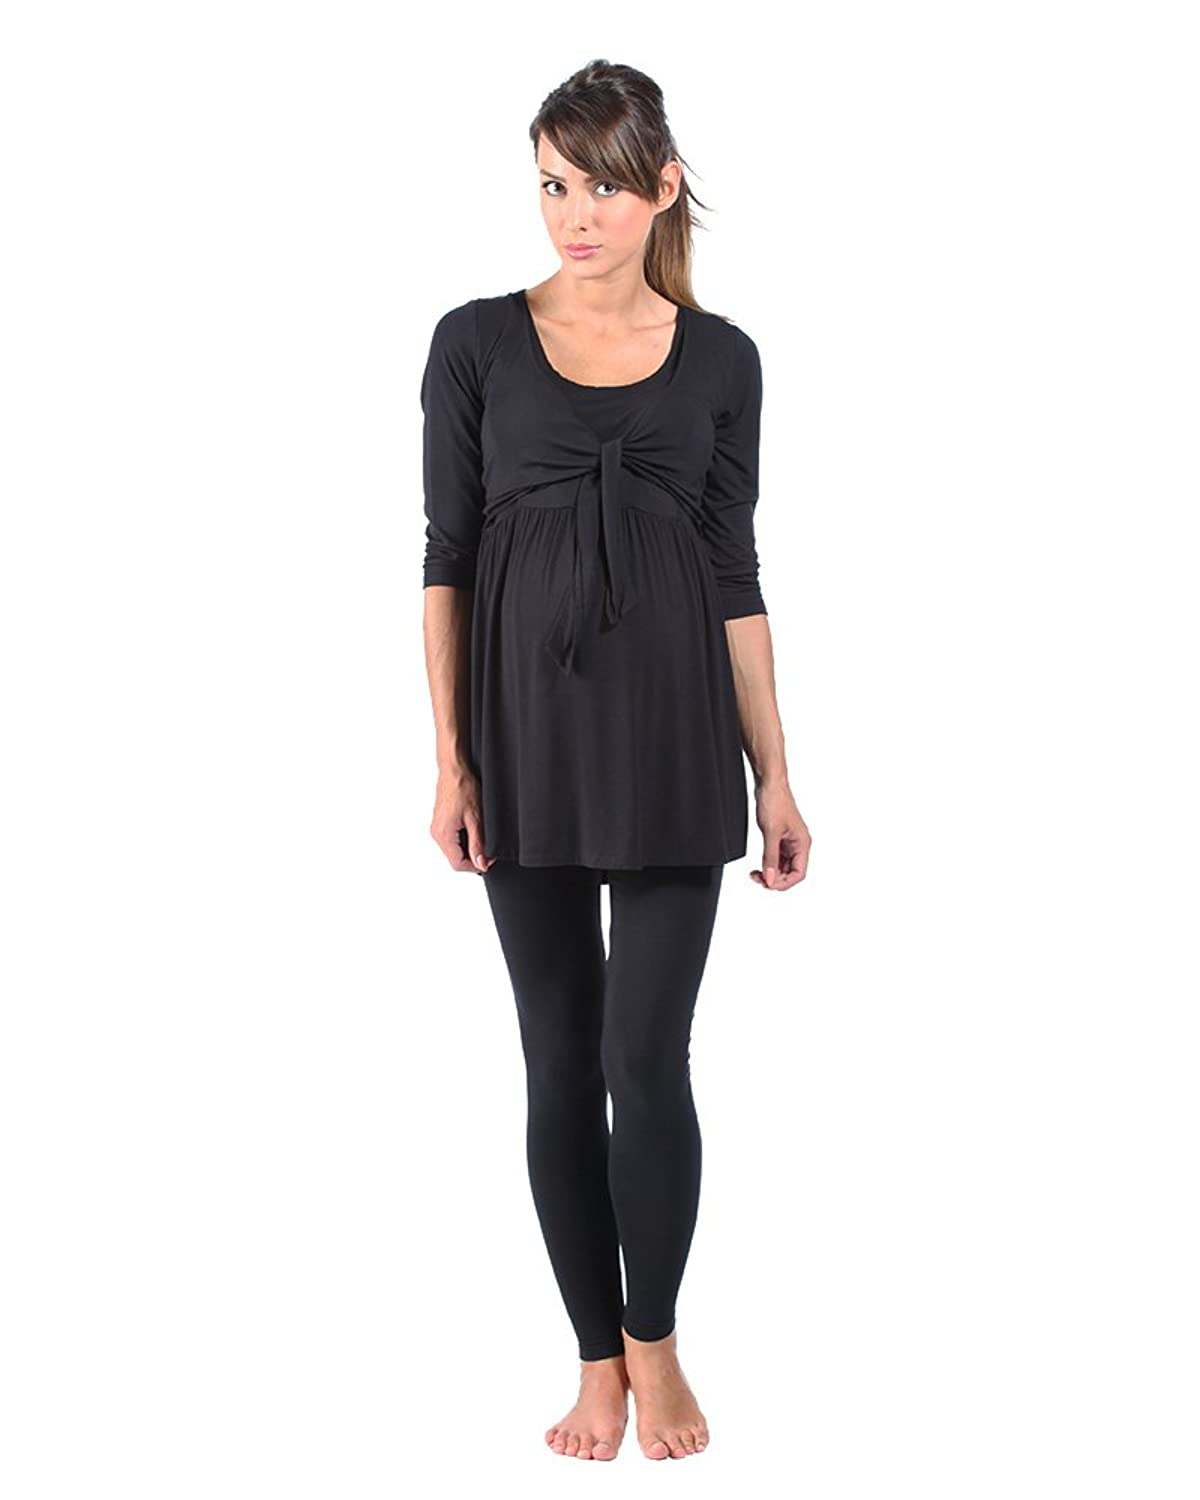 The Essential One - 3/4 Sleeve tie front Nursing top